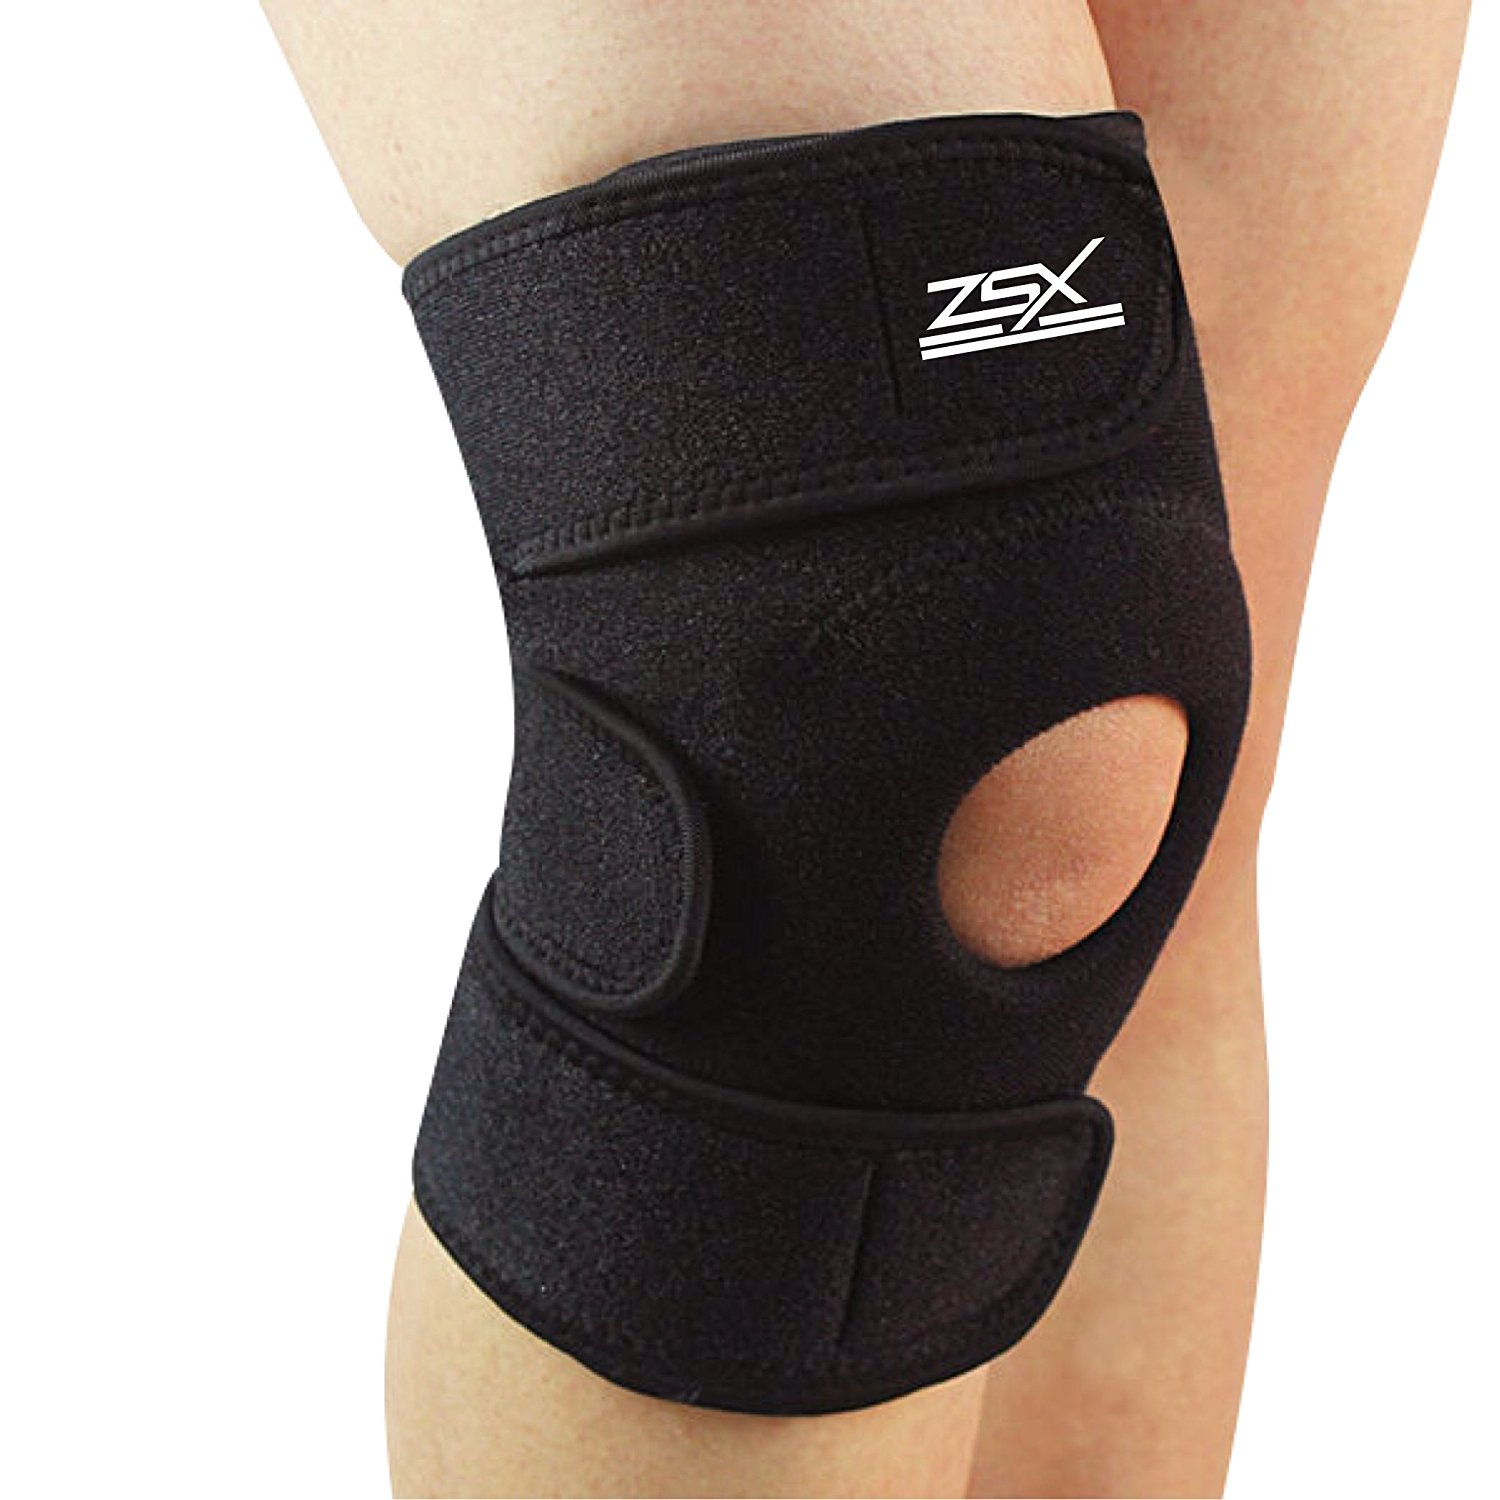 e9bda40f79 Top 10 Best Knee Braces For Running in 2019 - Top Best Pro Review